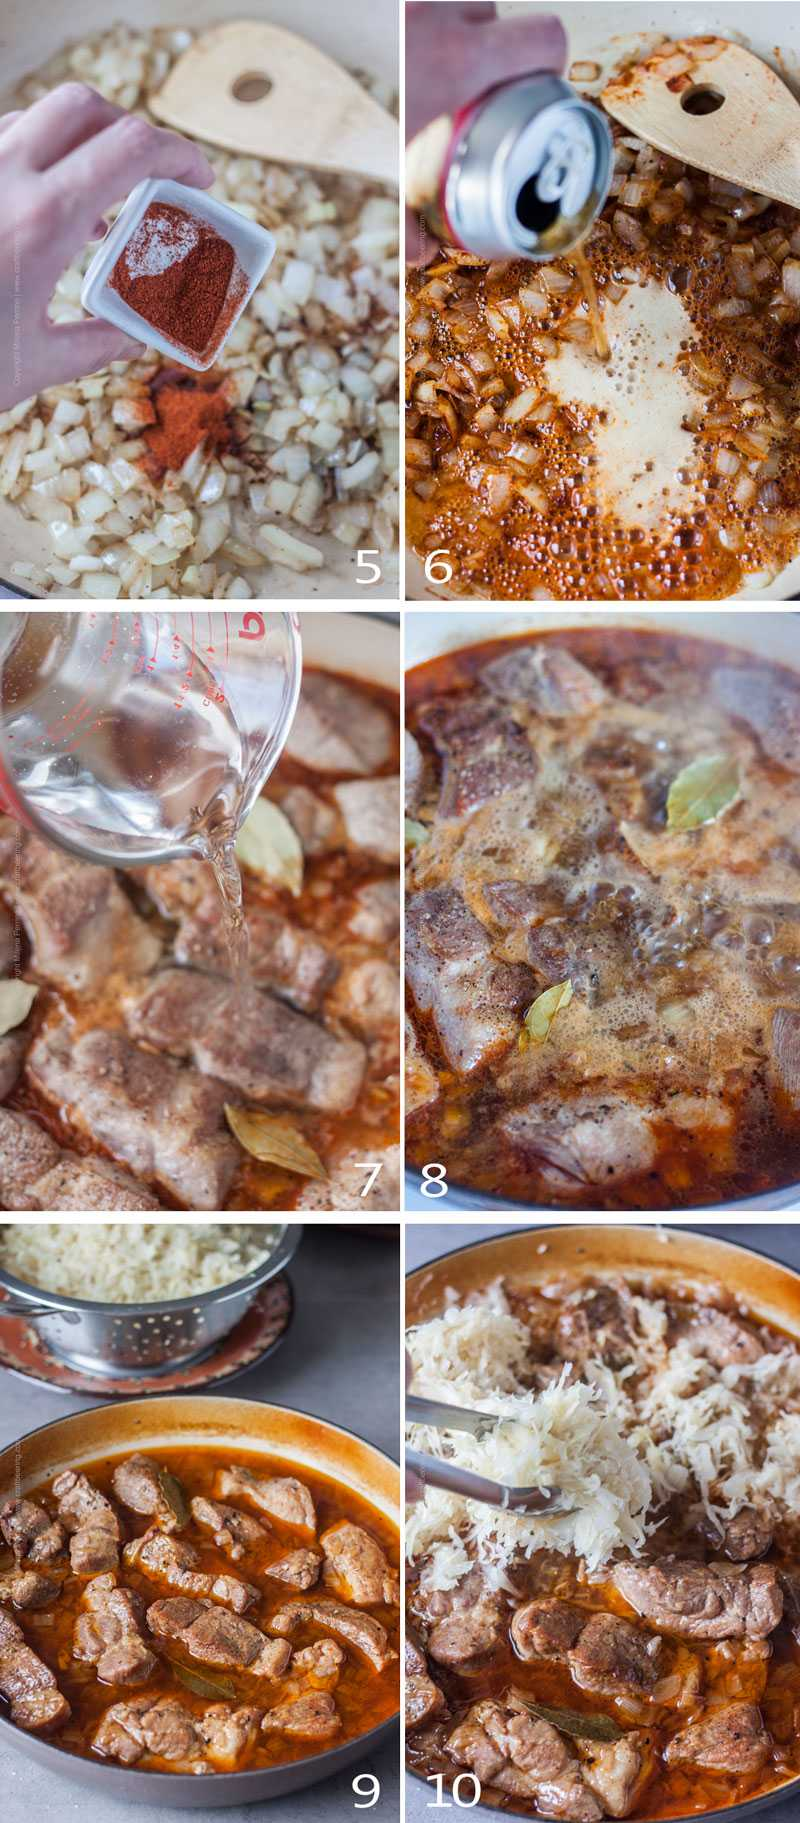 Image grid with steps to cook pork and sauerkraut in the oven 2